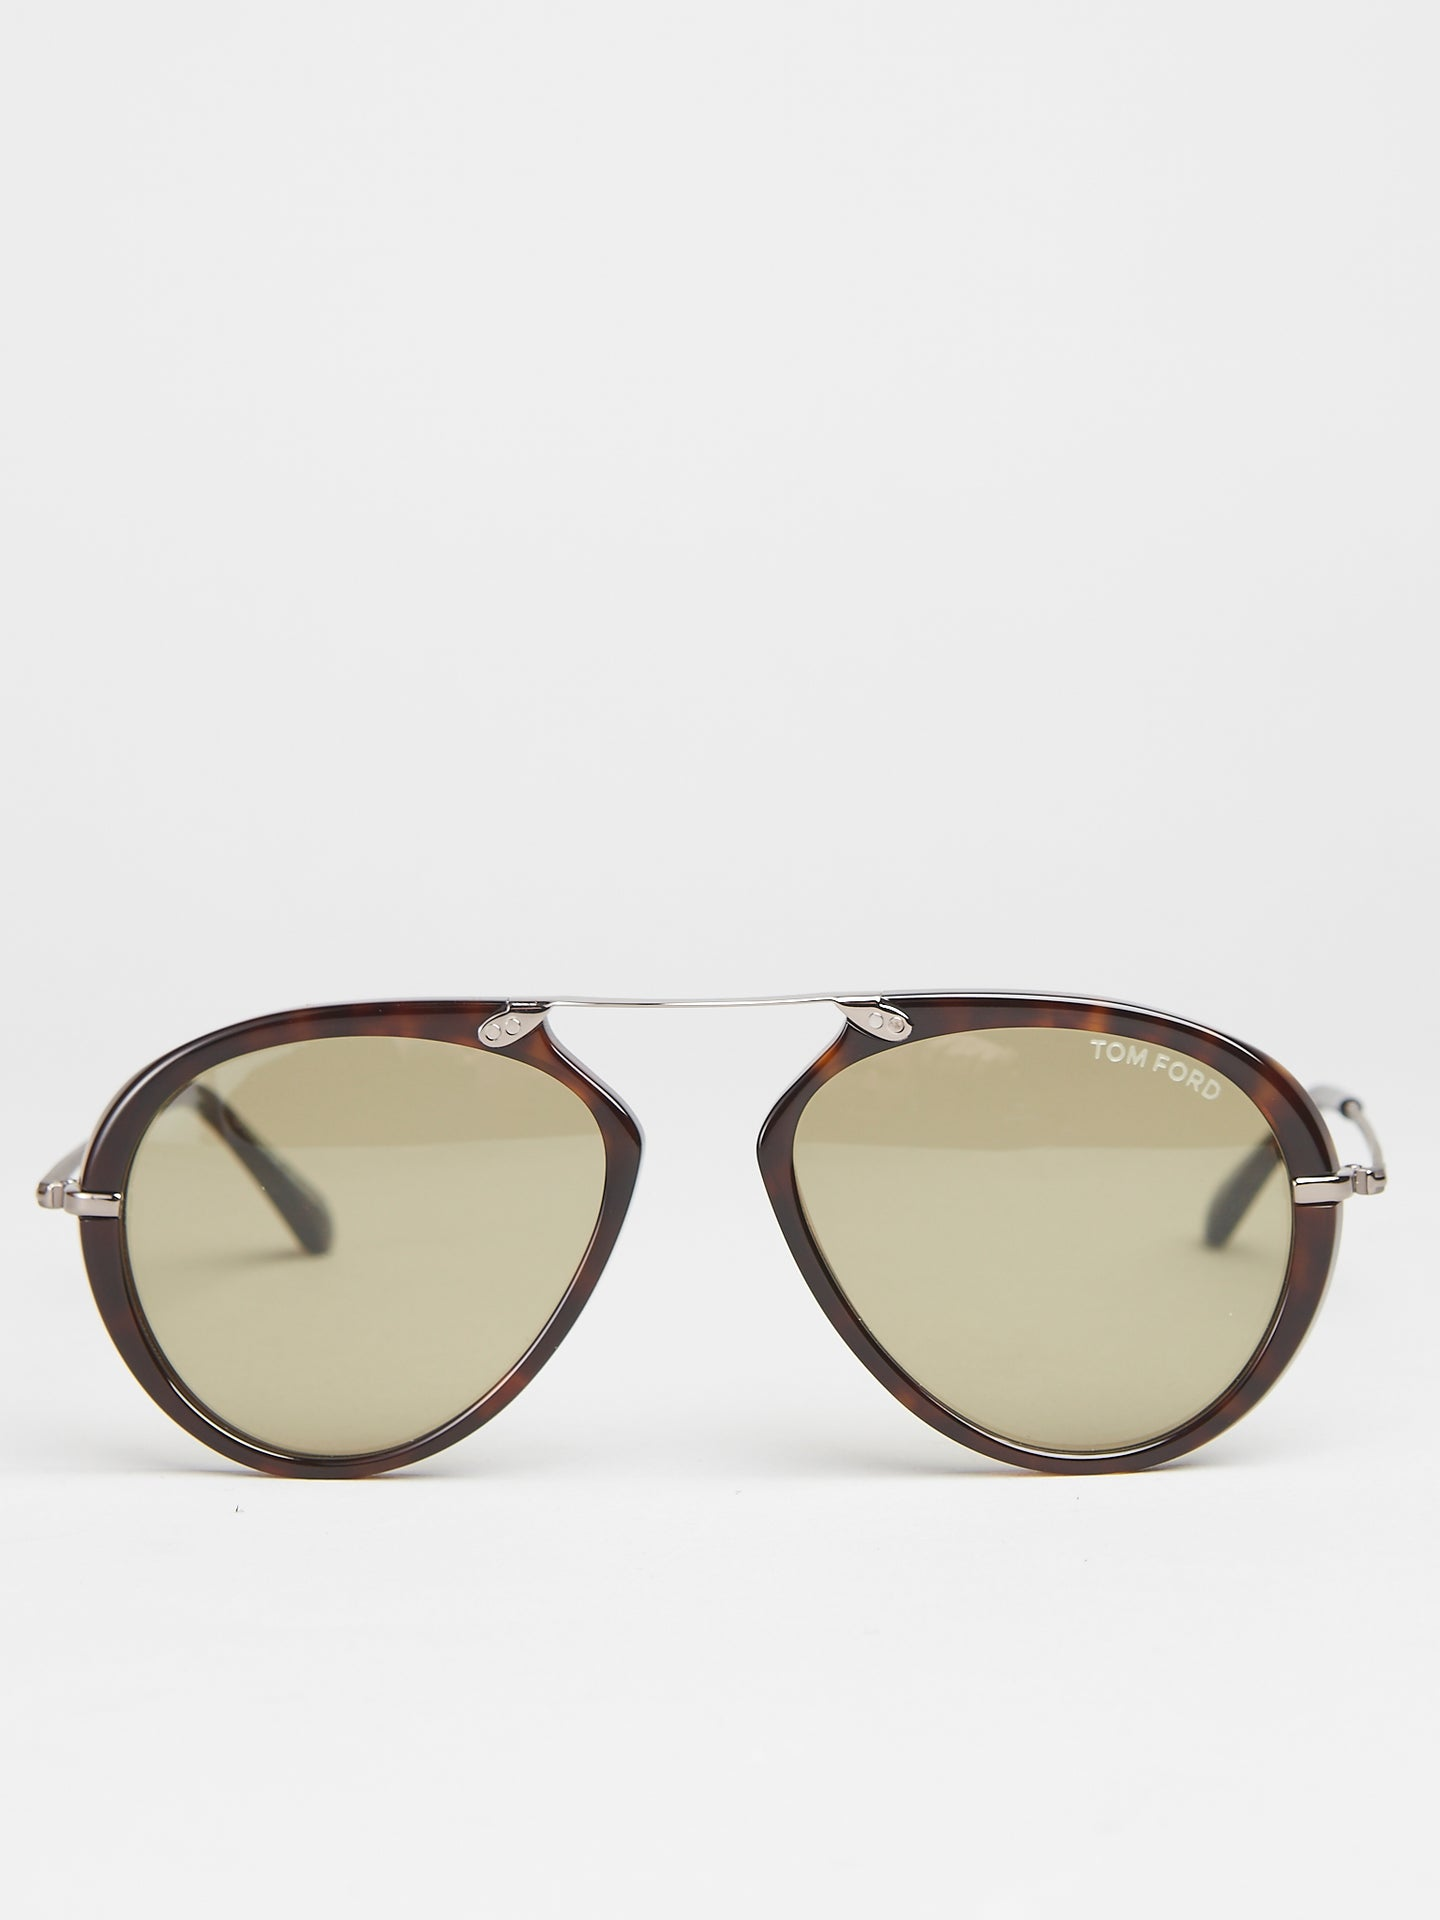 Tom Ford Acetate Aaron Metal Dark Havana (TF0473 52N)